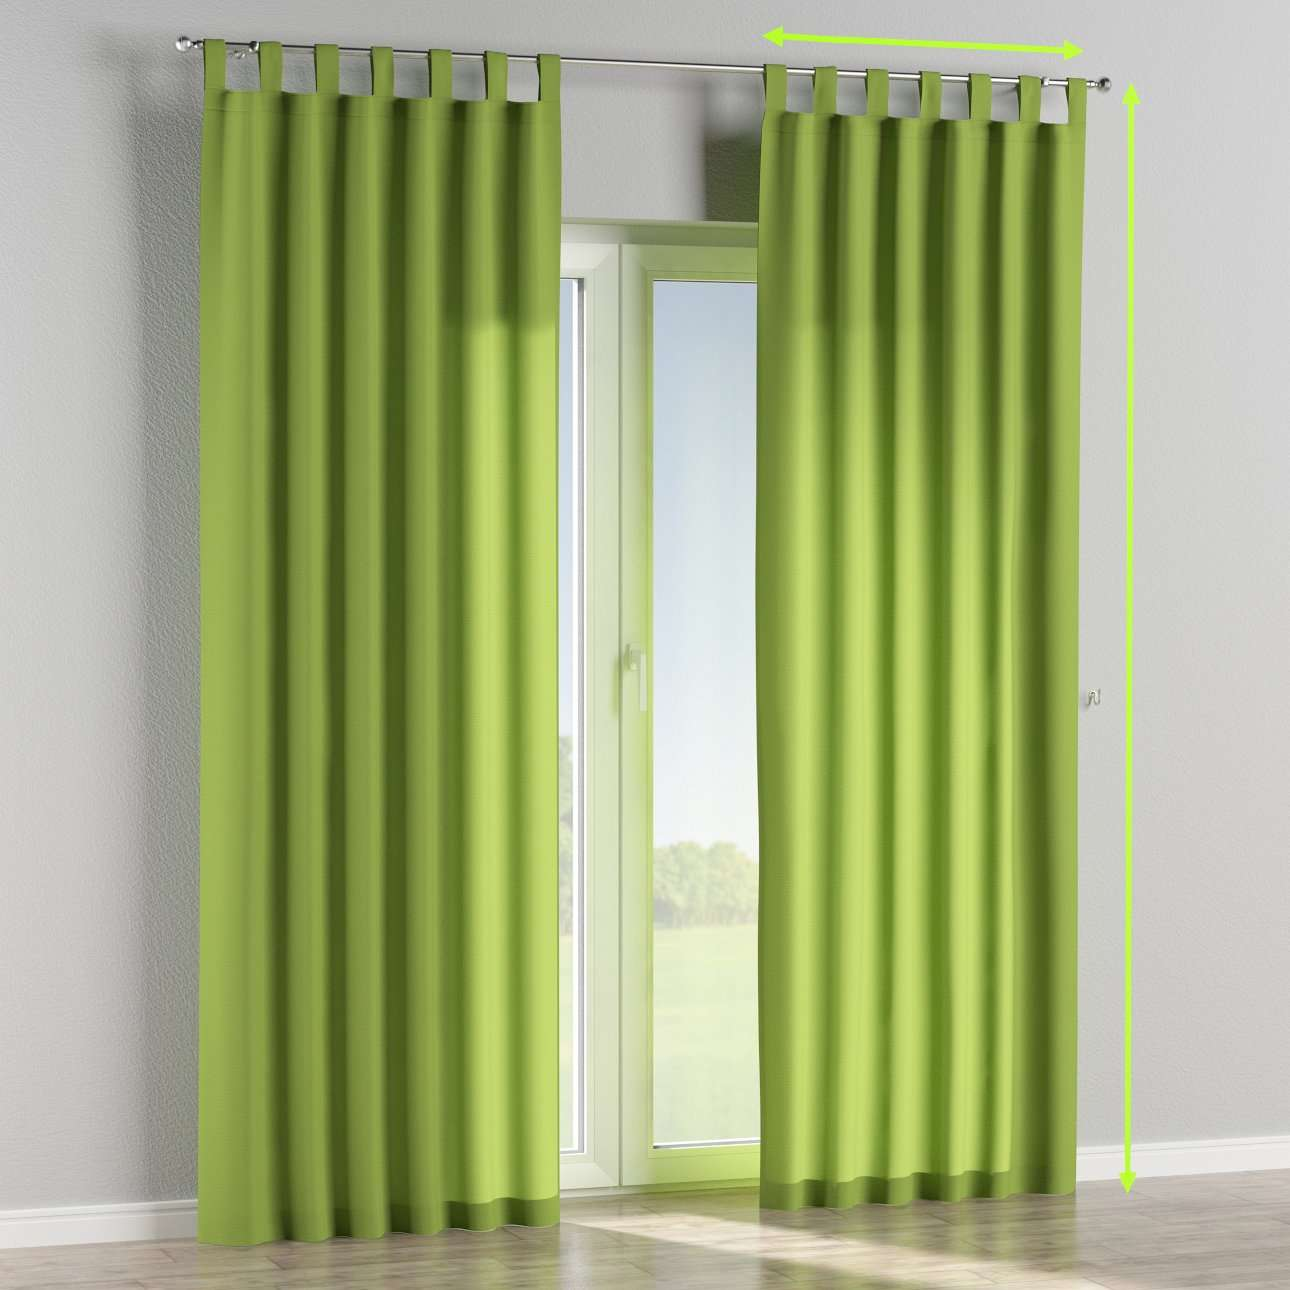 Tab top lined curtains in collection Quadro, fabric: 136-37